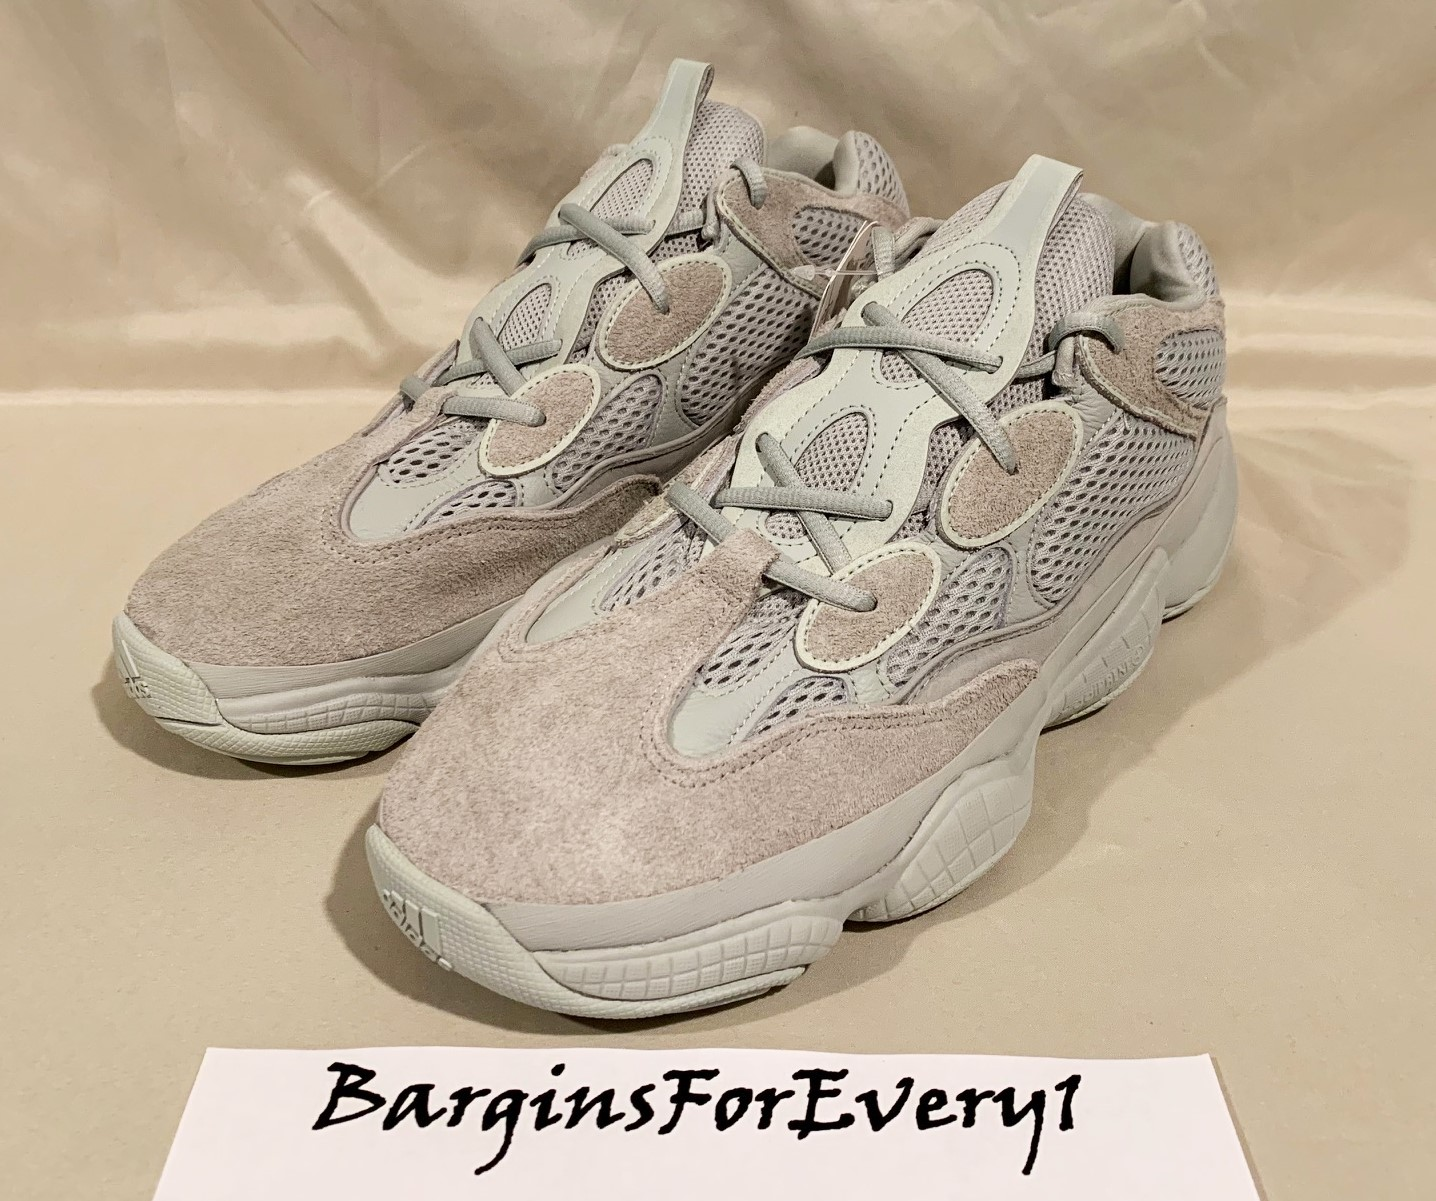 online store b8501 195cd New Adidas Yeezy Boost 500 - Size 11 - Salt - EE7287 - Kanye West